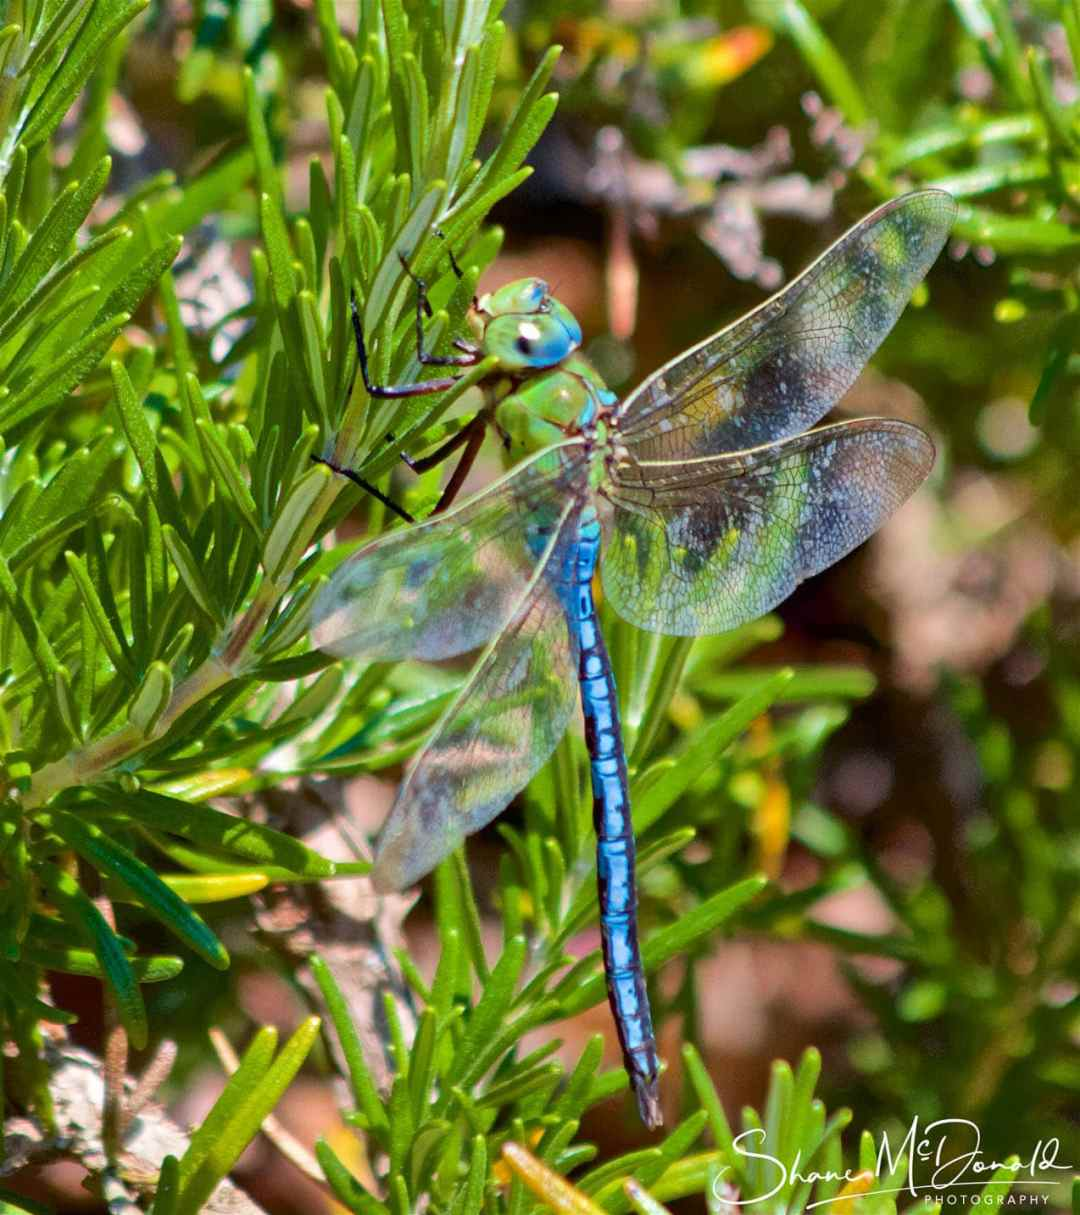 Dragonfly Photo on plant - Wildlife on the Isle of Wight